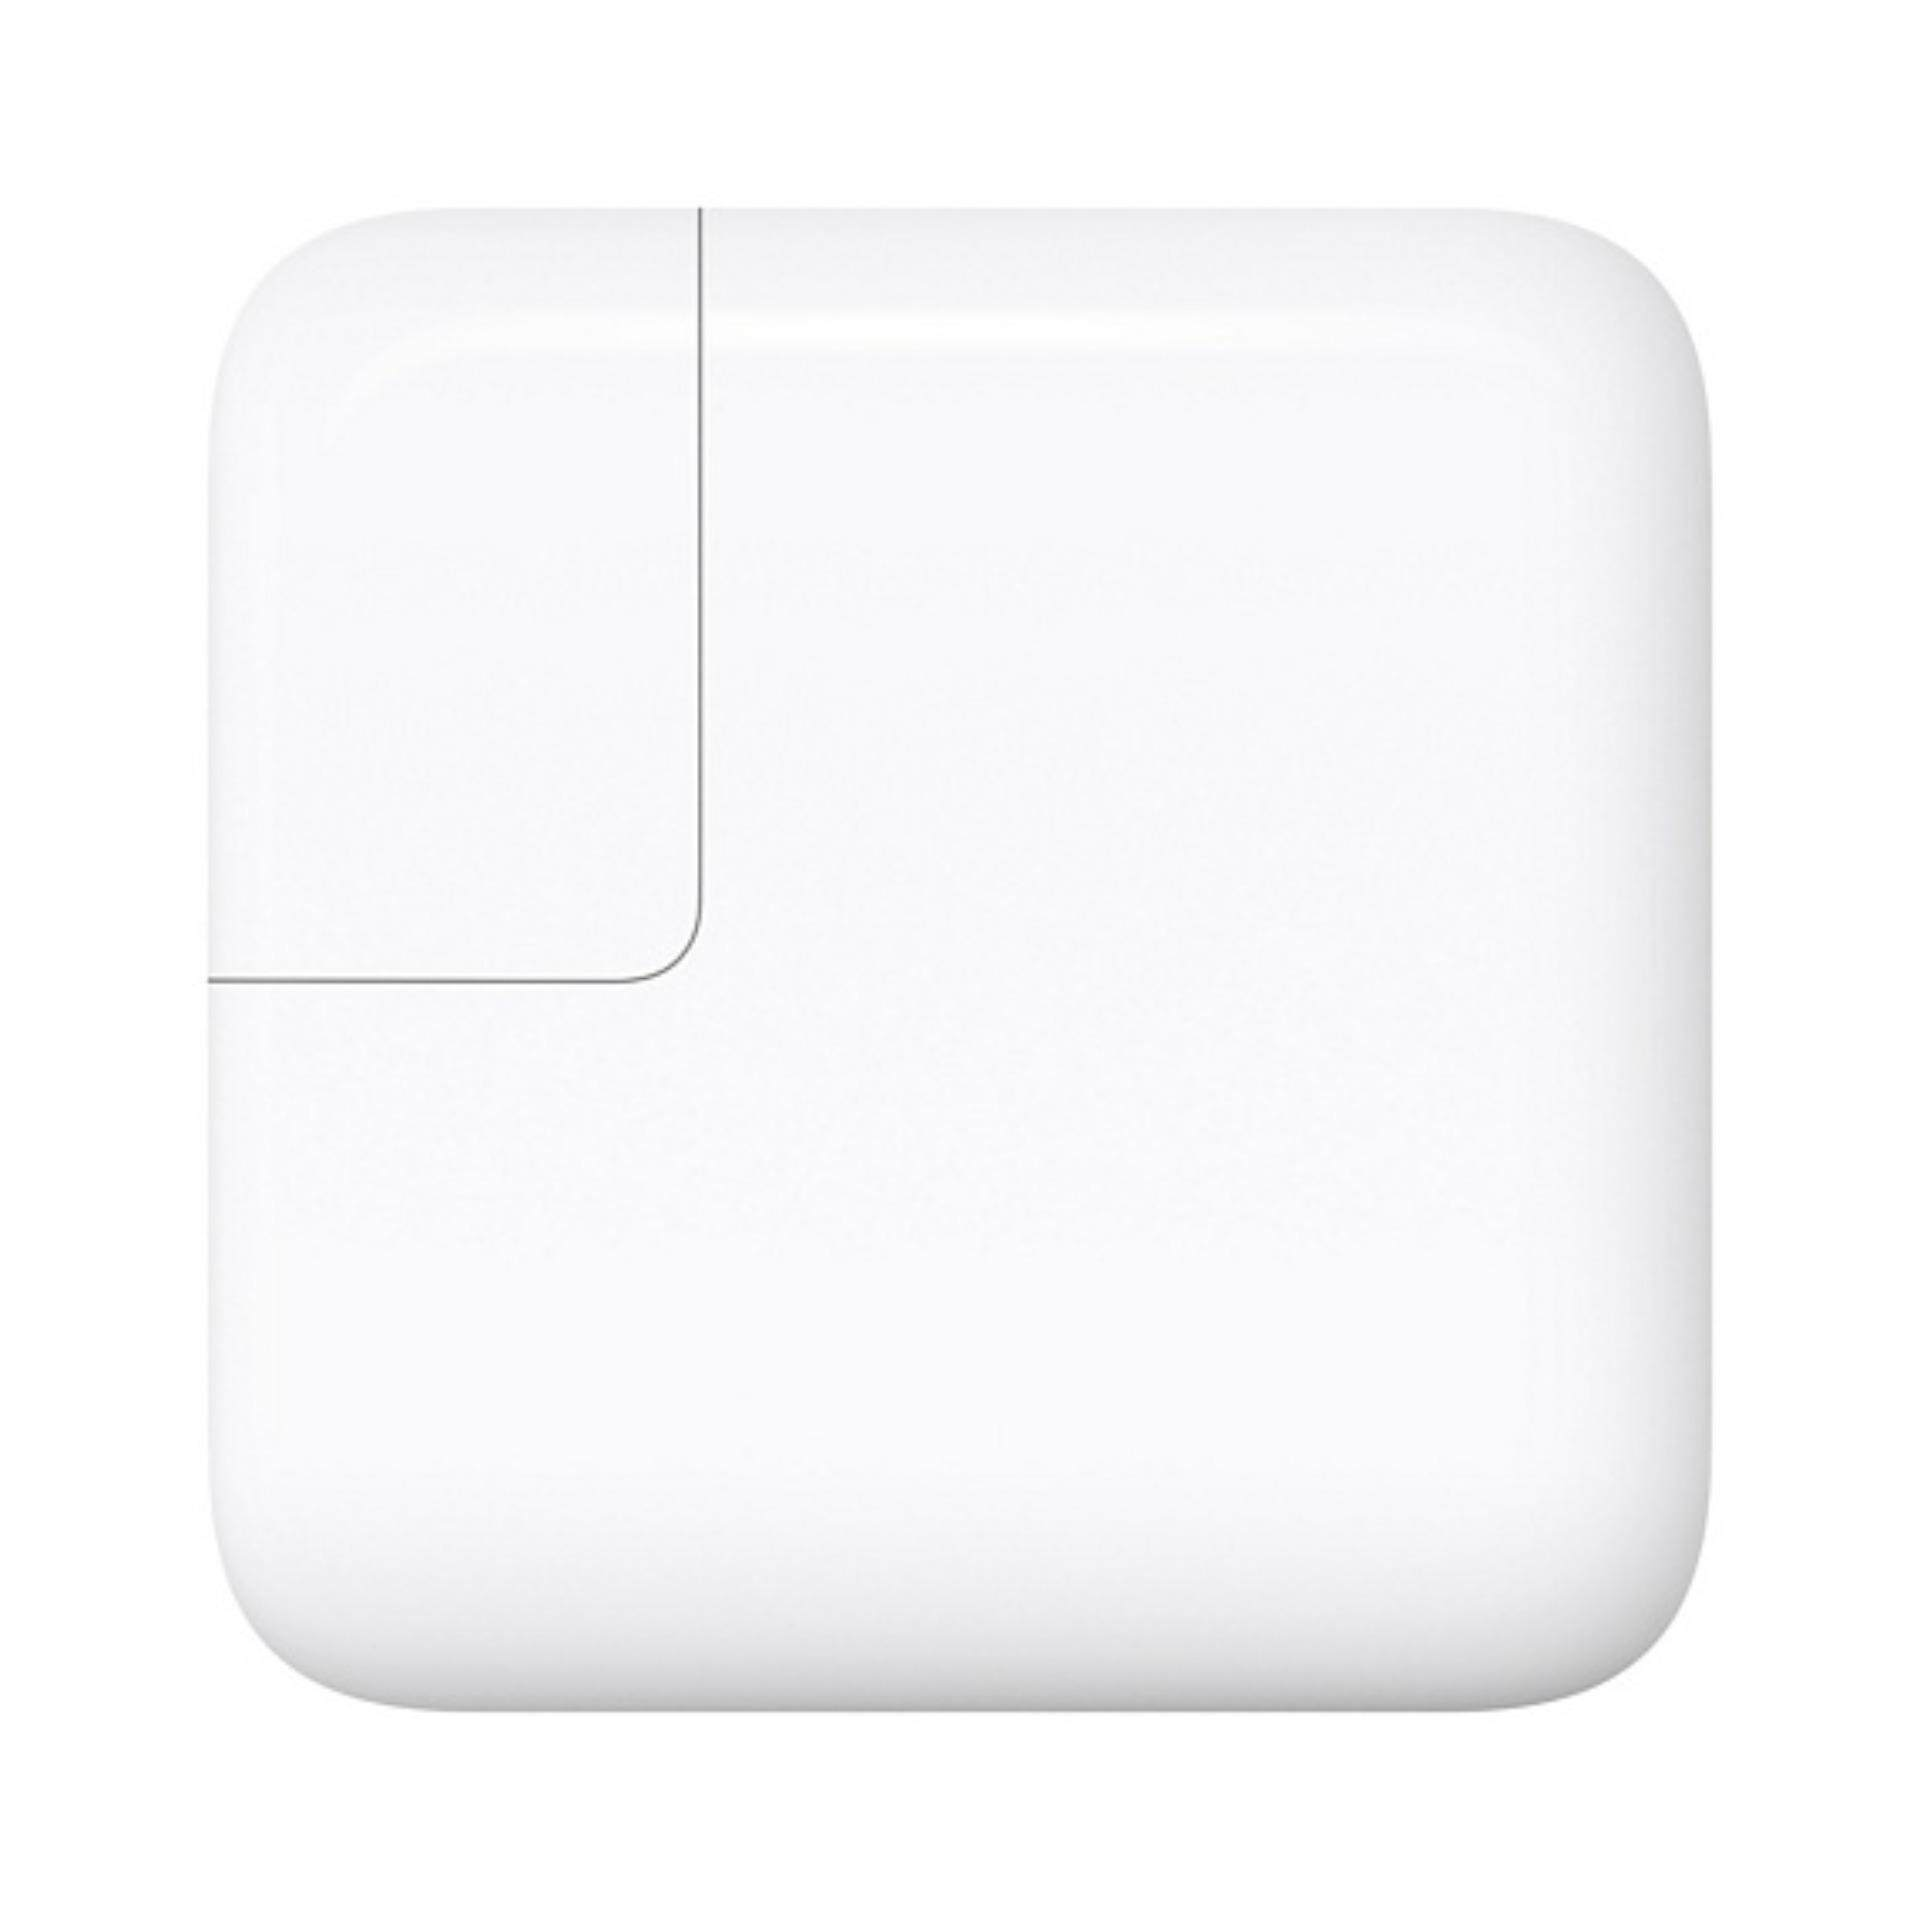 Apple 30w Usc-C Power Adapter [2018] For Iphone 8, 8 Plus, X, Select Ipad Pro Models, 12-Inch Macbook By Lazada Retail Apple